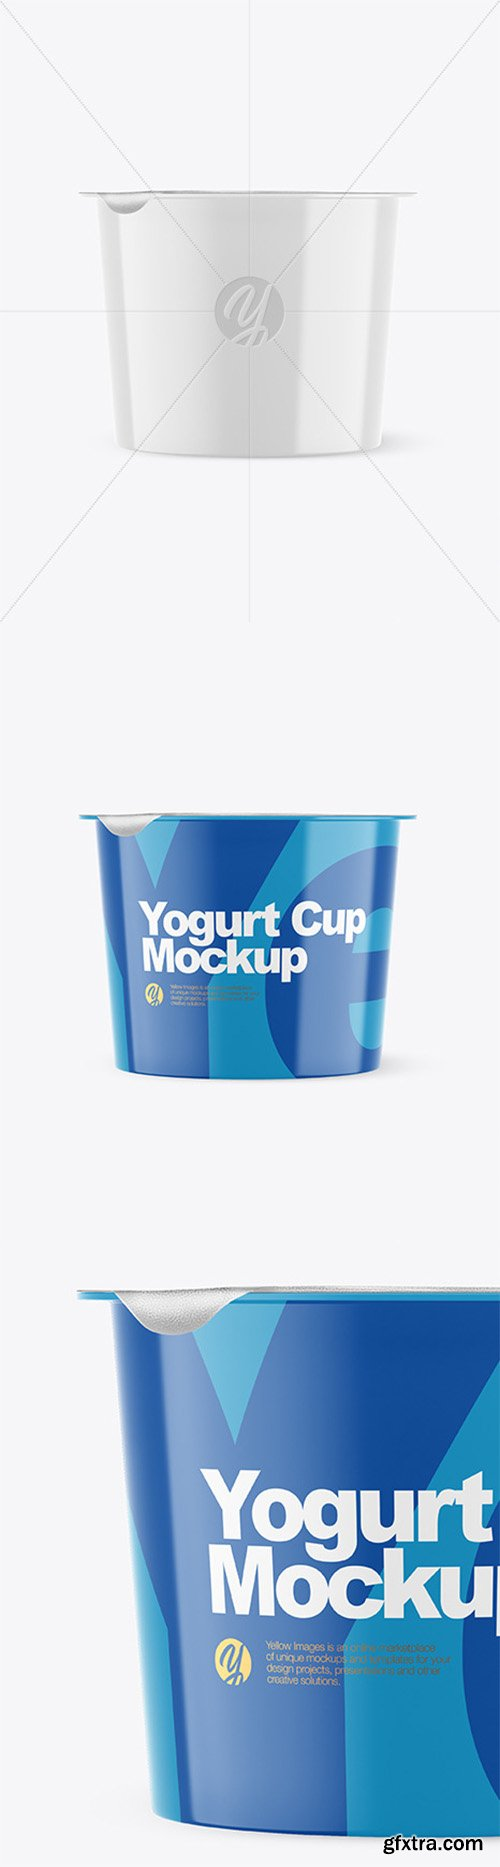 Glossy Plastic Yogurt Cup With Foil Lid Mockup - Front View 66253